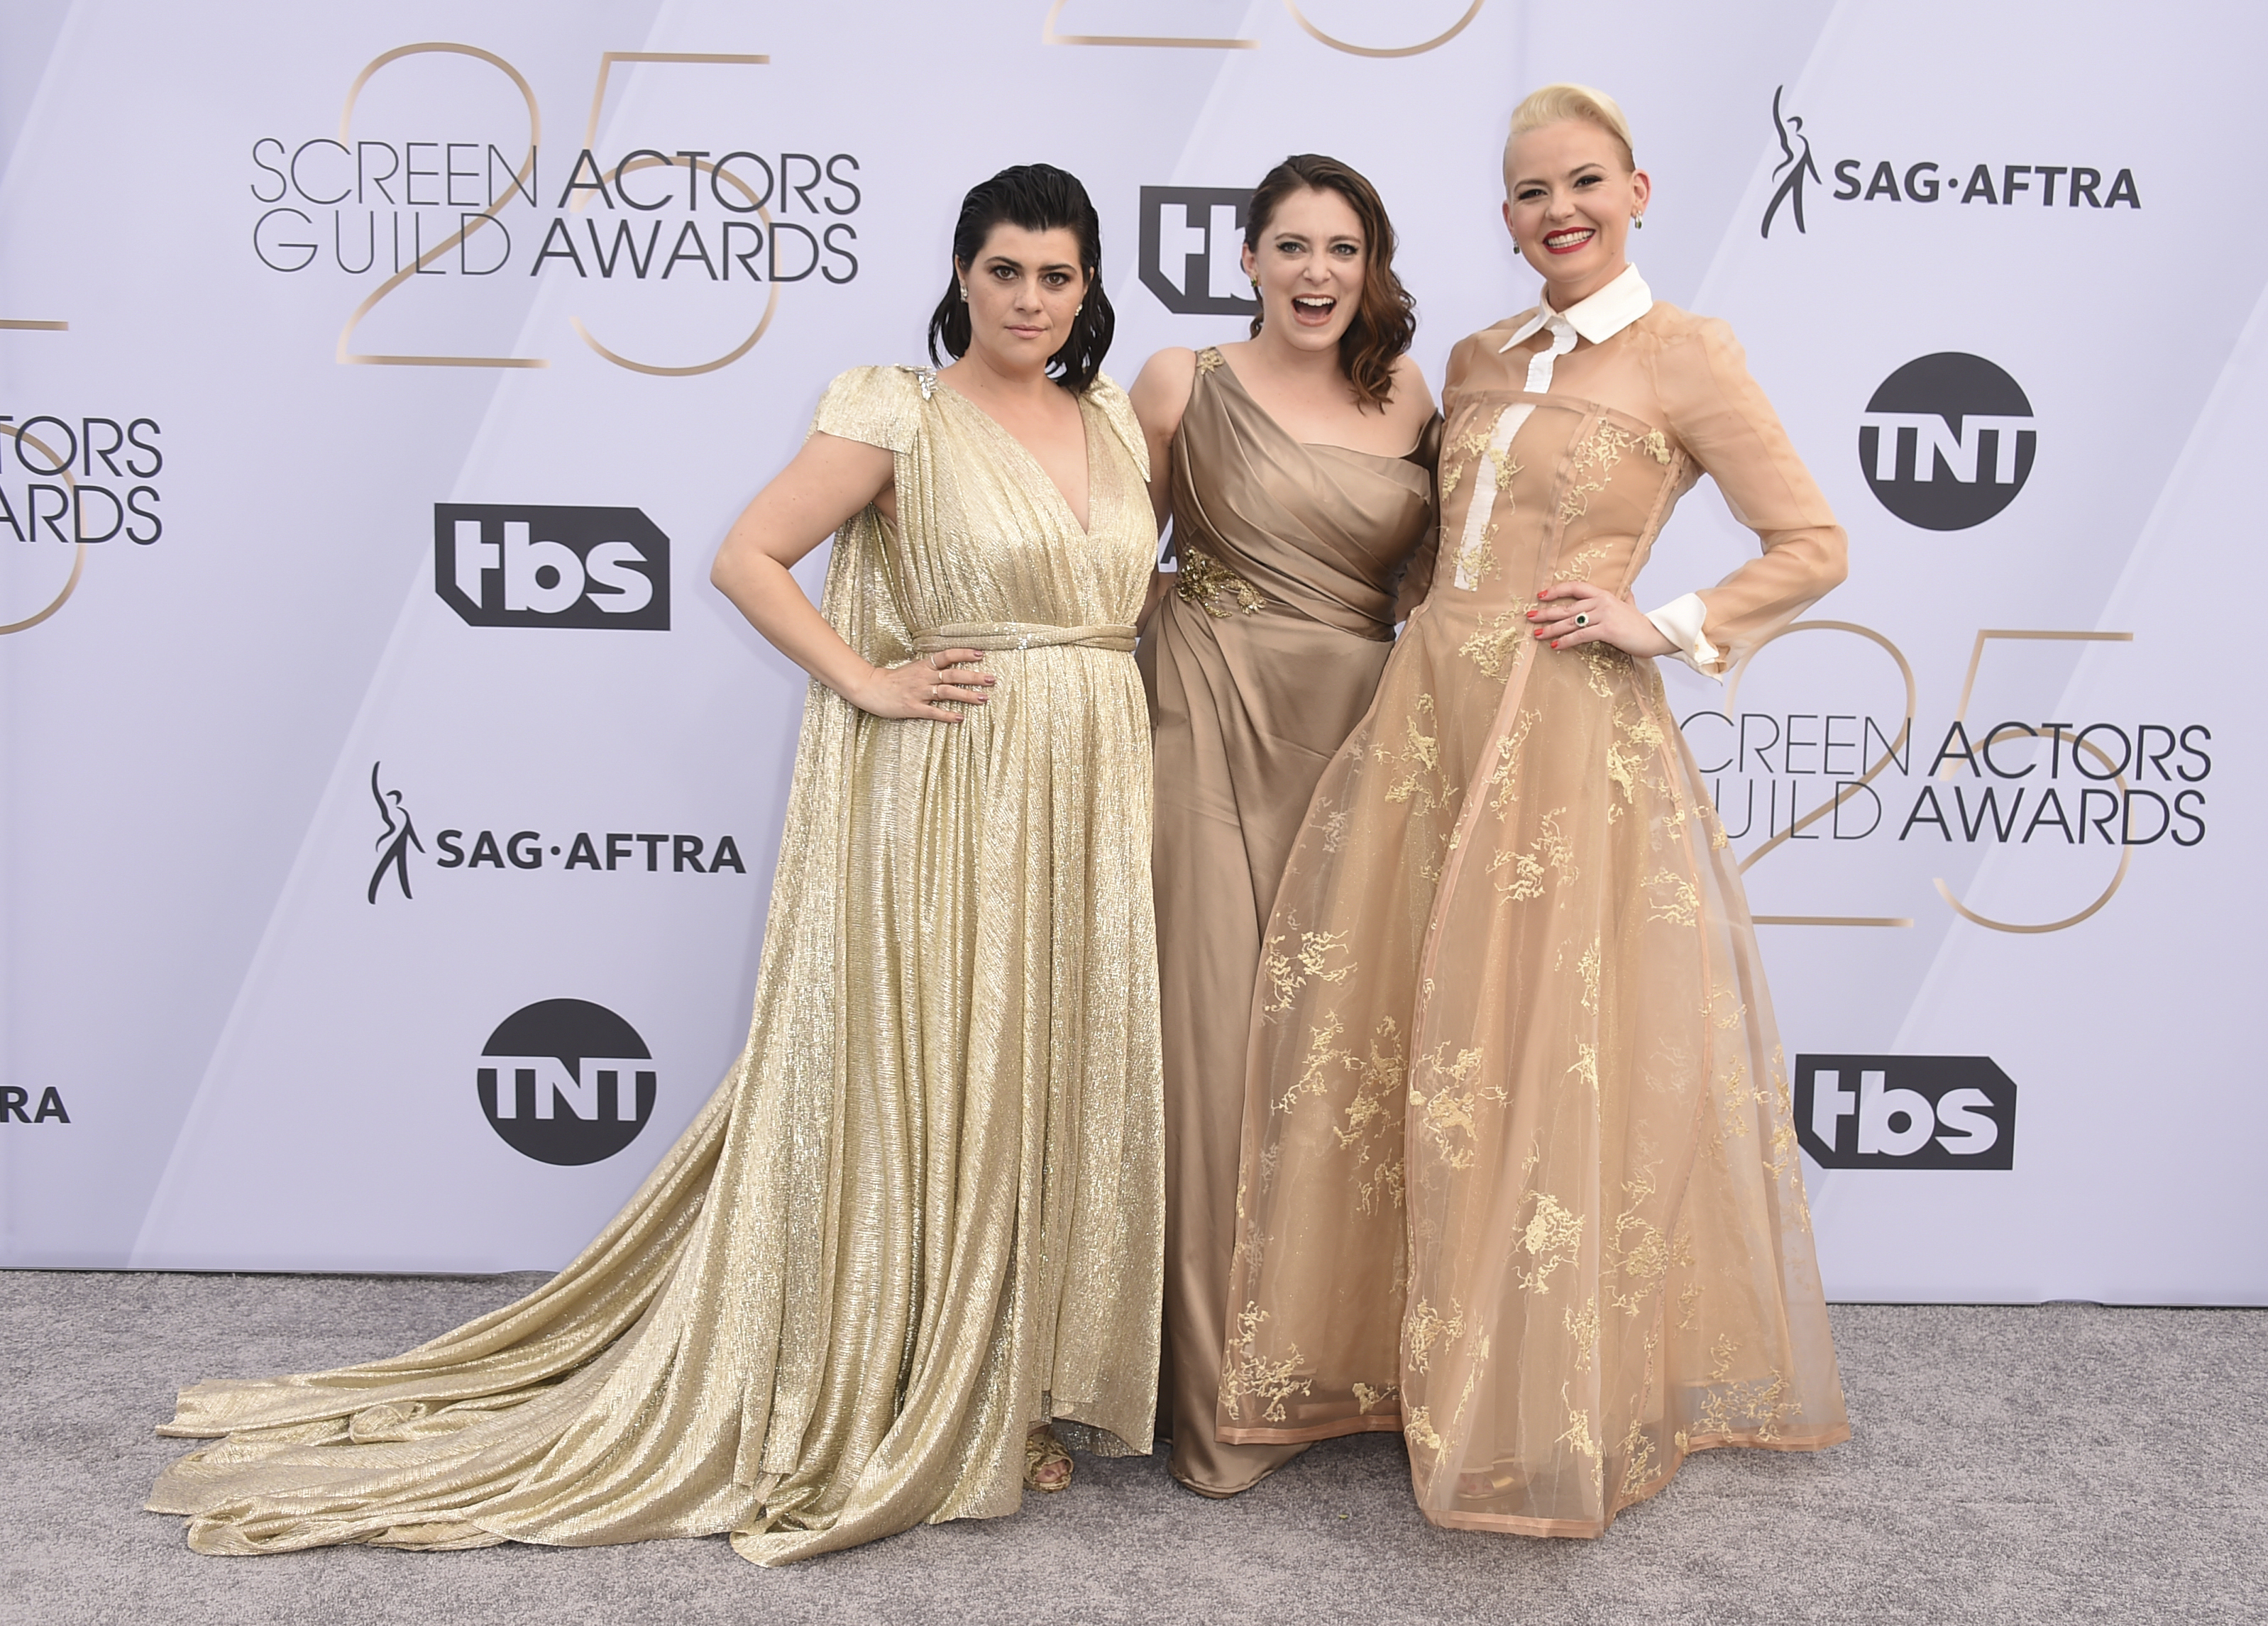 <div class='meta'><div class='origin-logo' data-origin='AP'></div><span class='caption-text' data-credit='Jordan Strauss/Invision/AP'>Rebekka Johnson, from left, Rachel Bloom, and Kimmy Gatewood arrive at the 25th annual Screen Actors Guild Awards at the Shrine Auditorium & Expo Hall on Sunday, Jan. 27, 2019.</span></div>